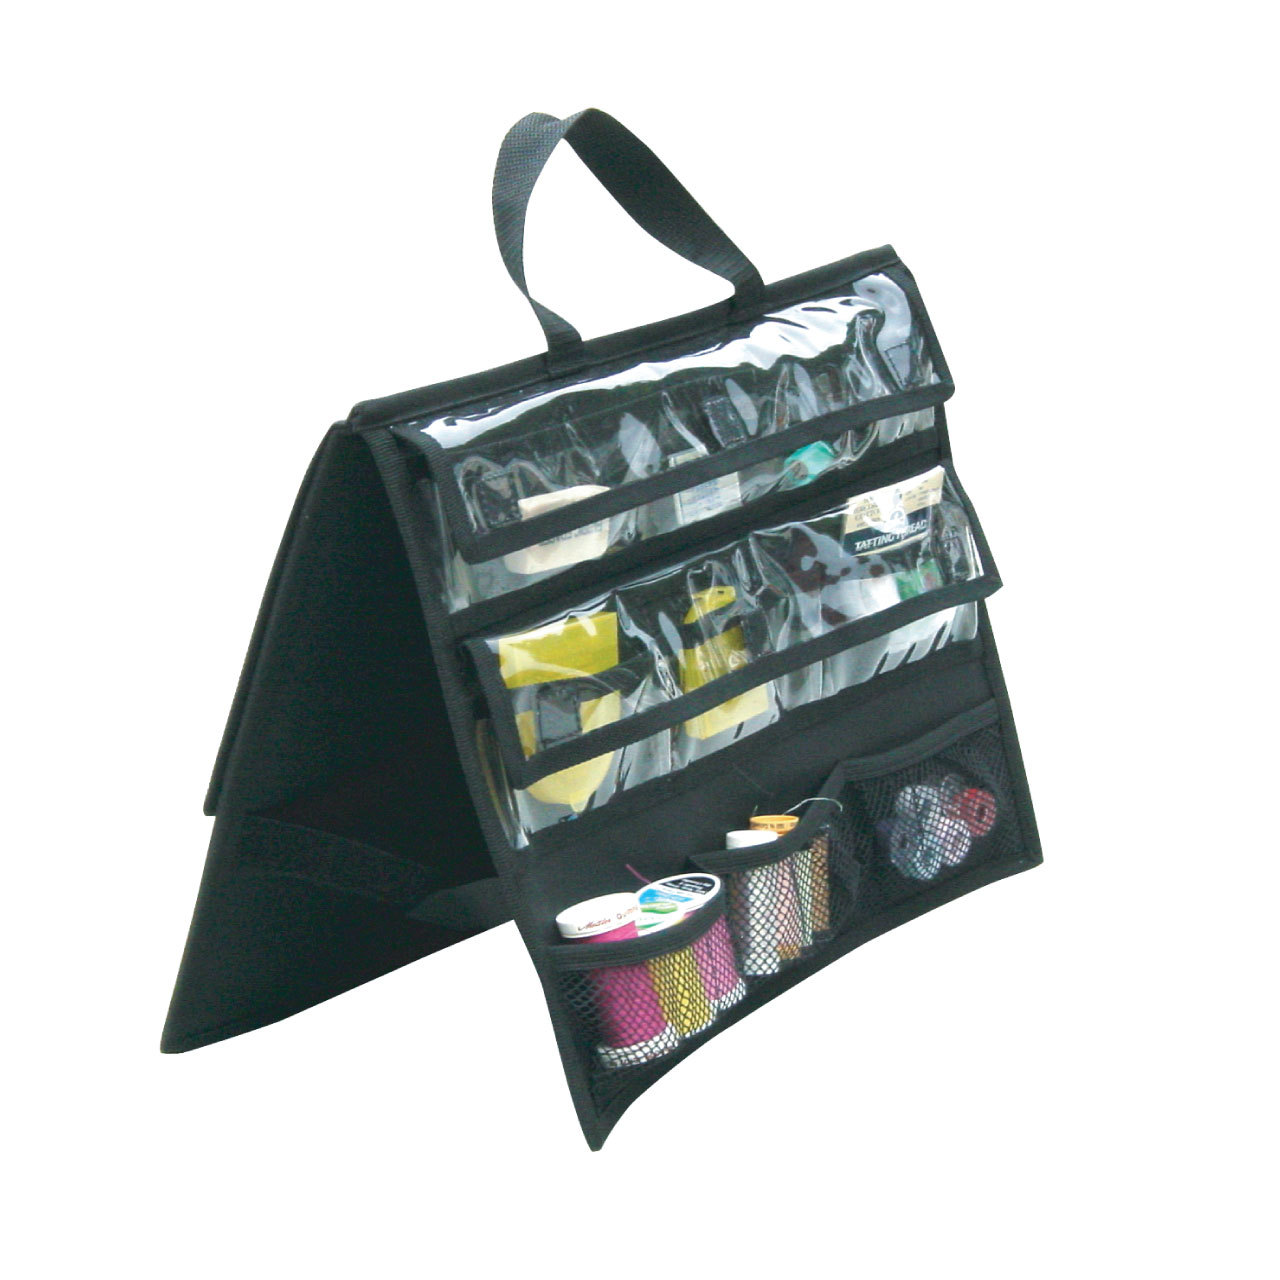 Organize Your Quilting Tools